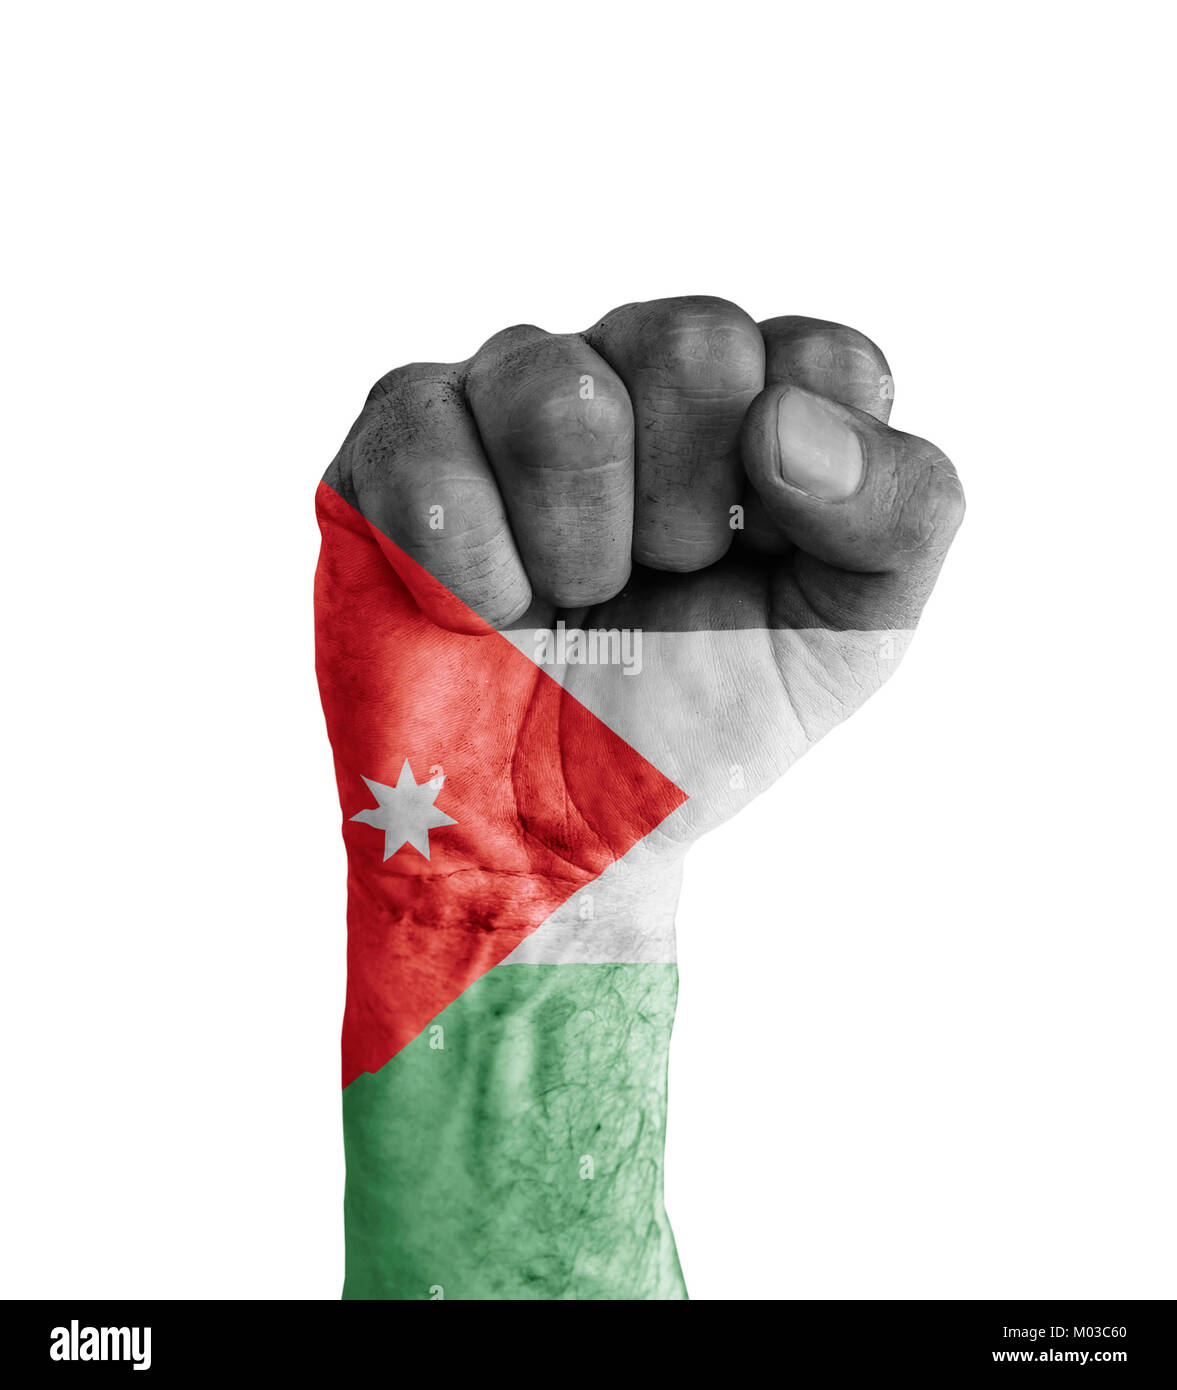 Flag of jordan stock photos flag of jordan stock images alamy flag of jordan painted on human fist like victory symbol stock image biocorpaavc Gallery